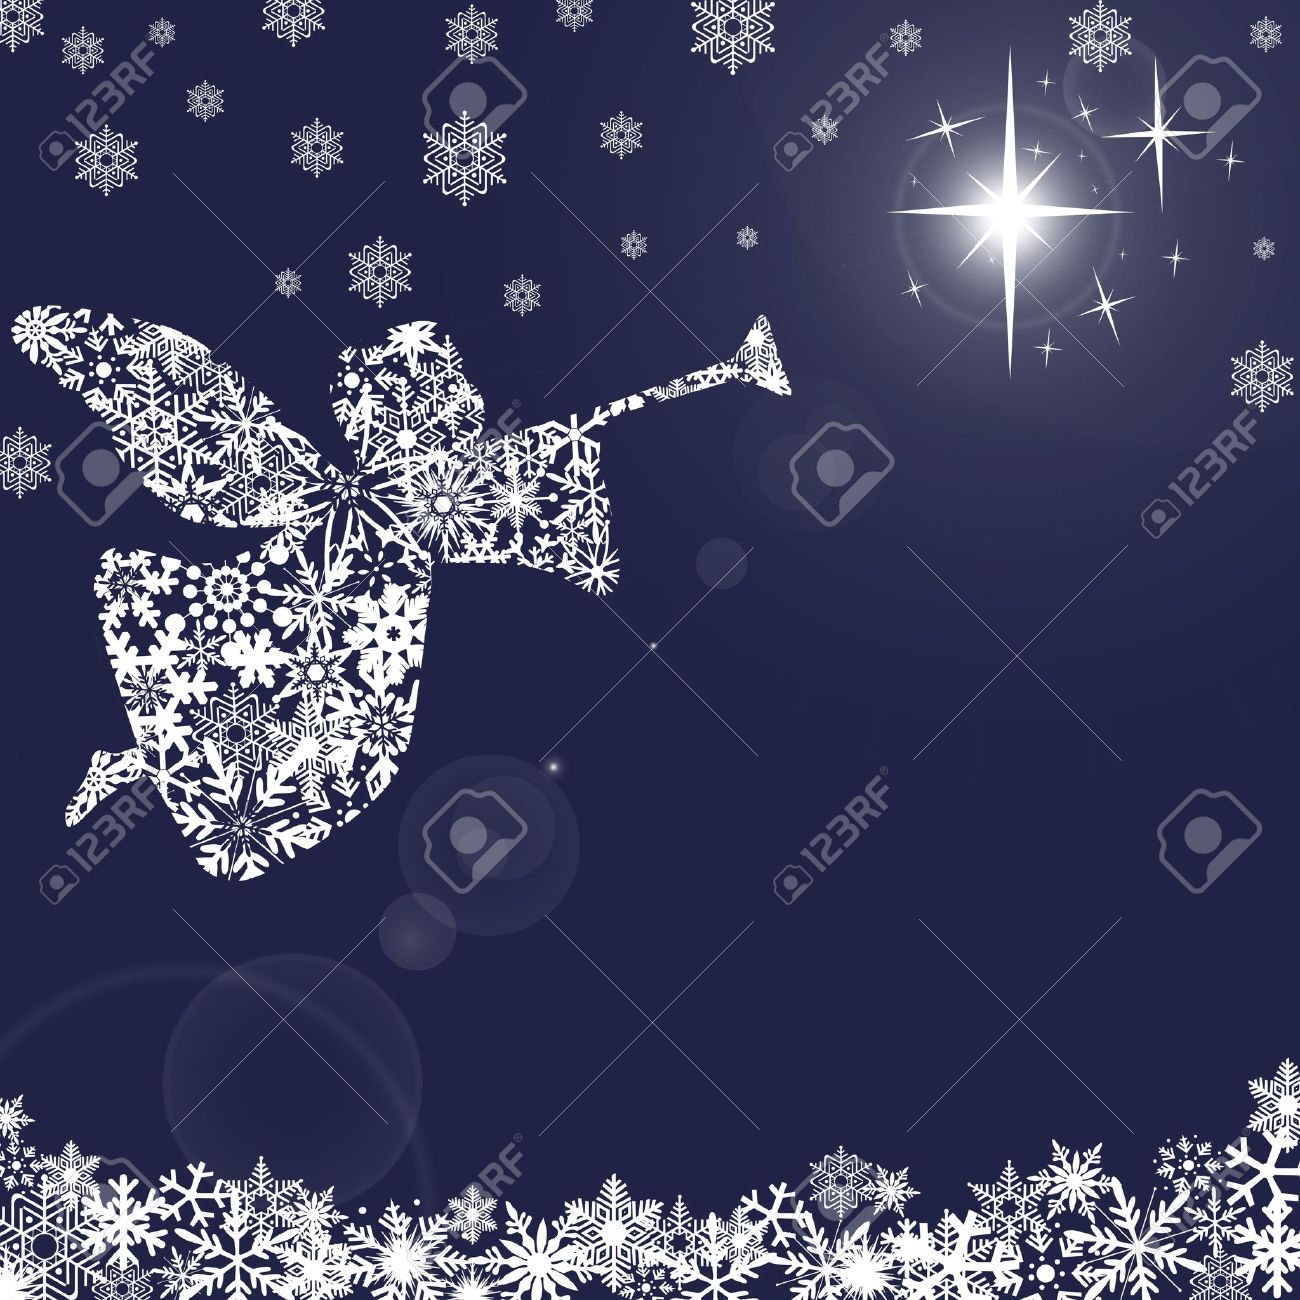 Christmas Angel with Trumpet and Snowflakes Blue Background Stock Photo - 8211779